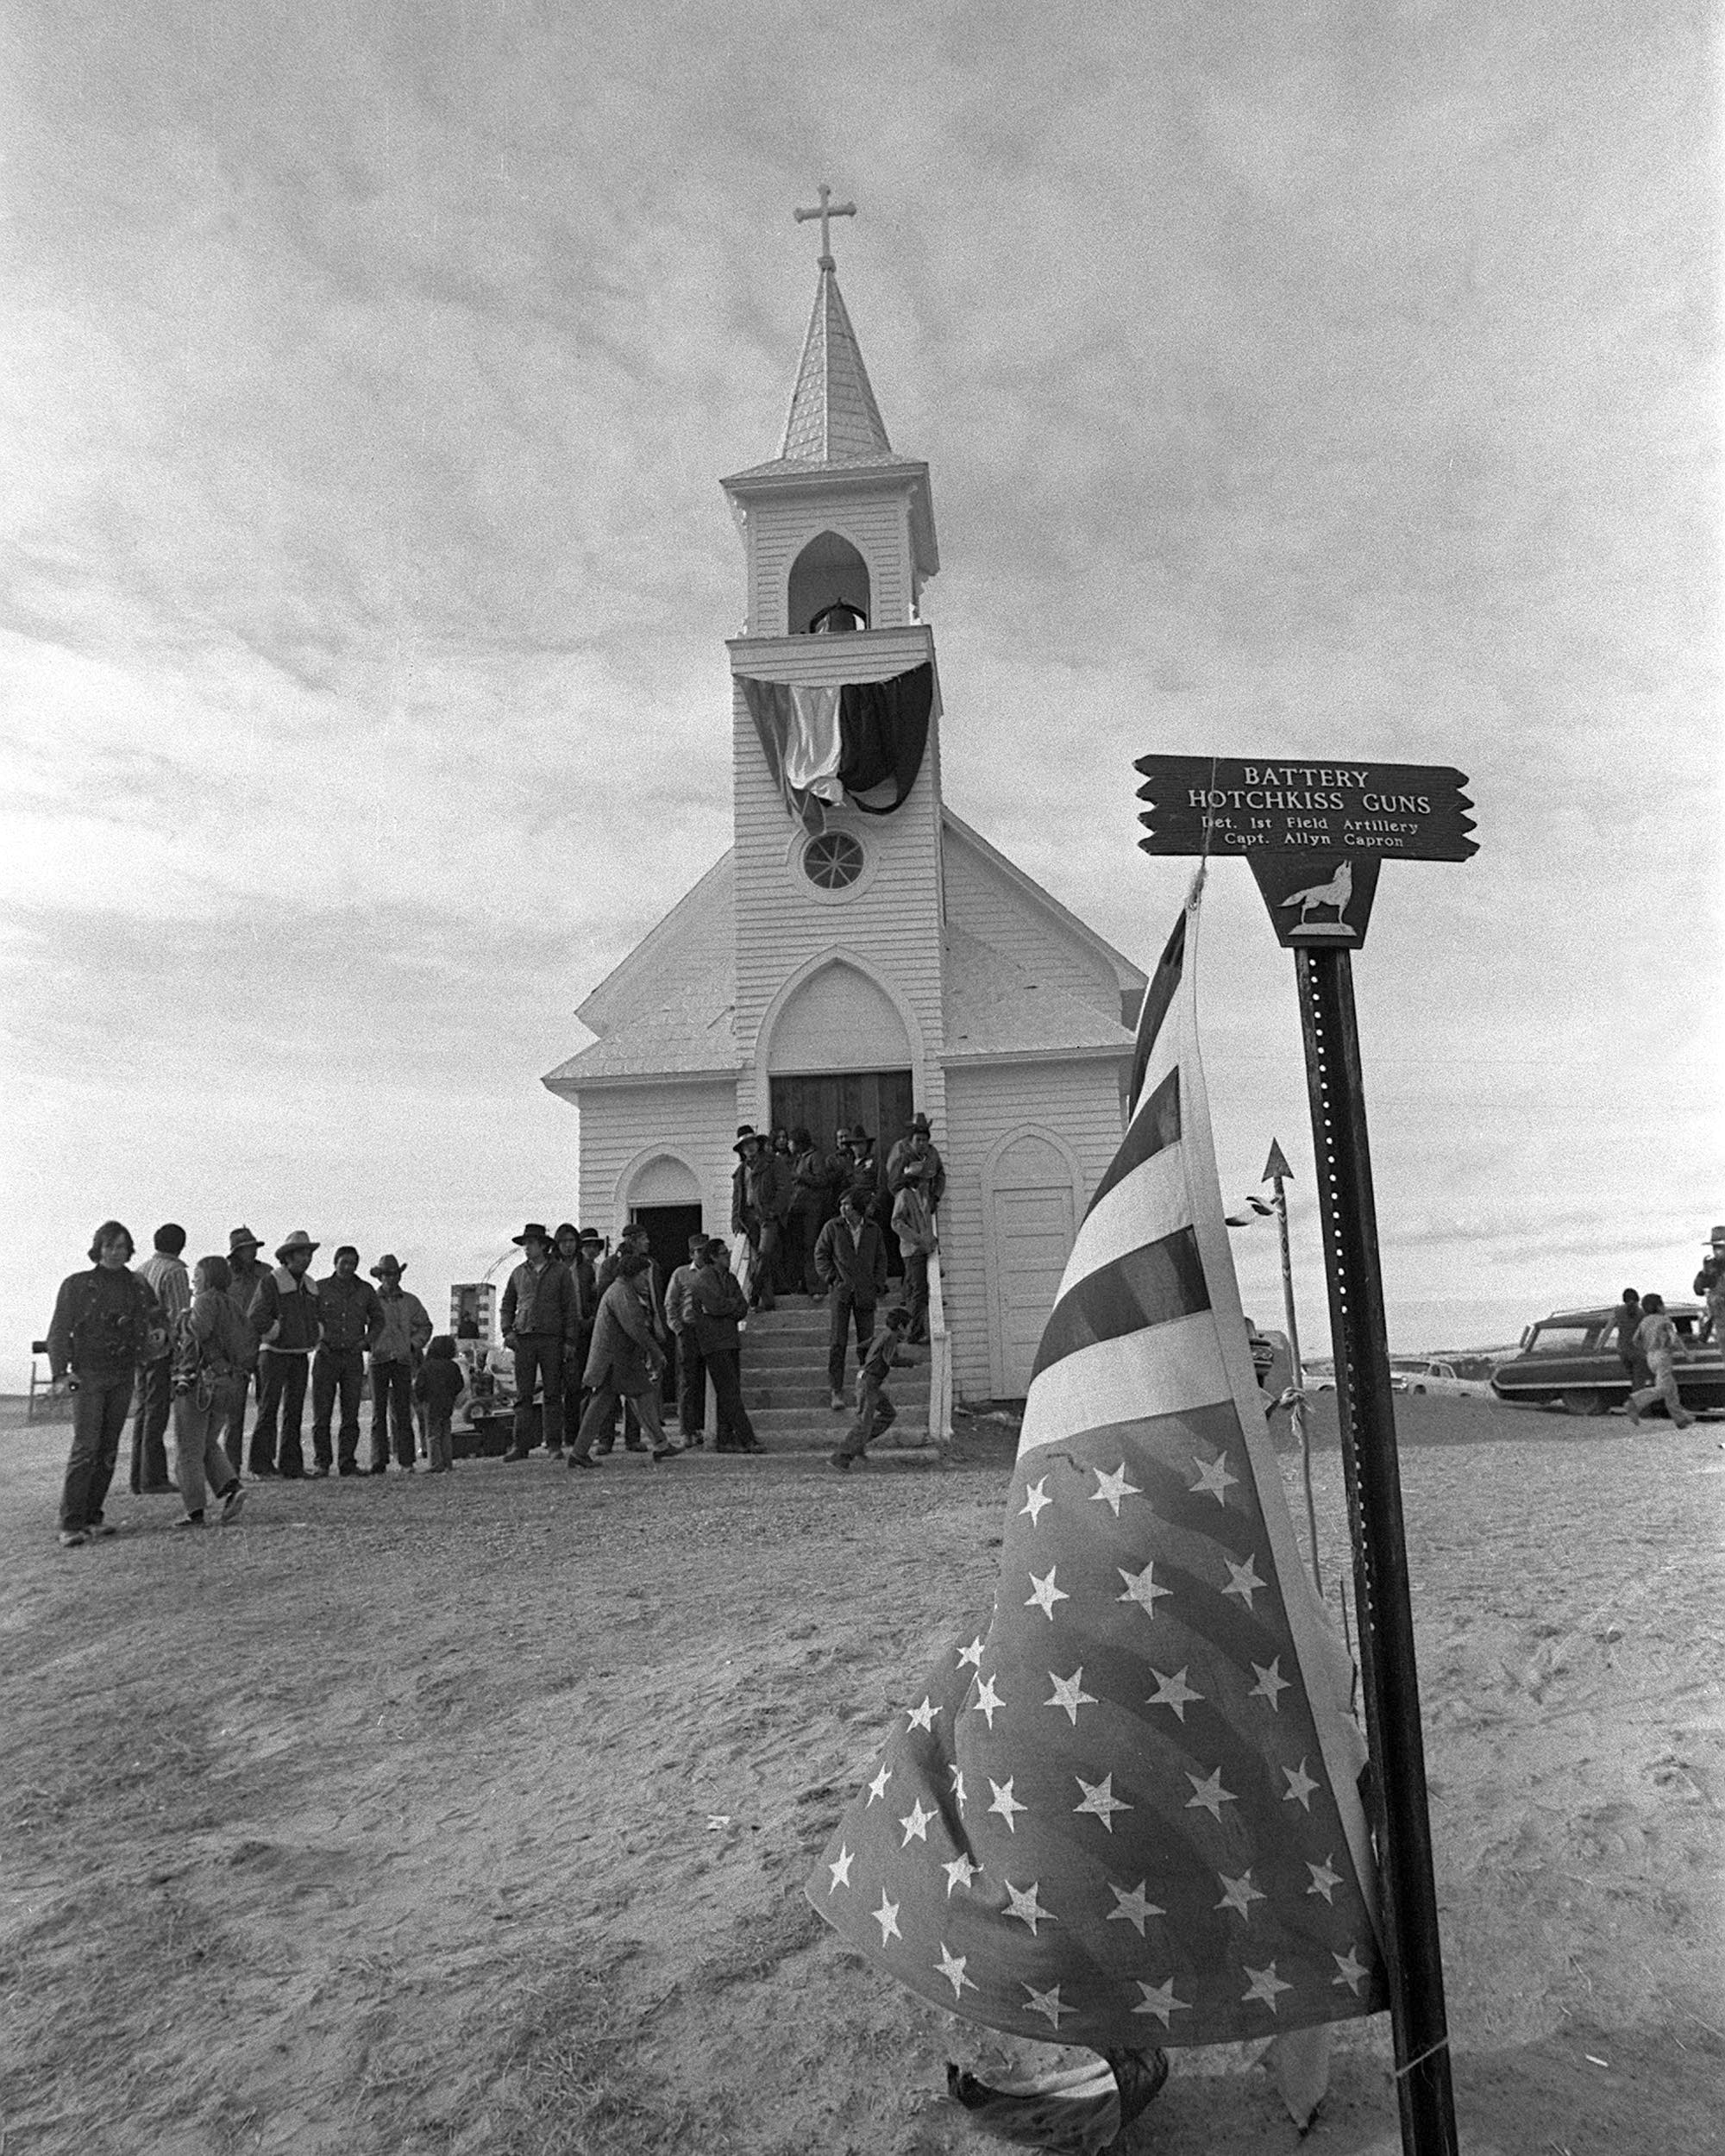 March 3, 1973: Wounded Knee occupation